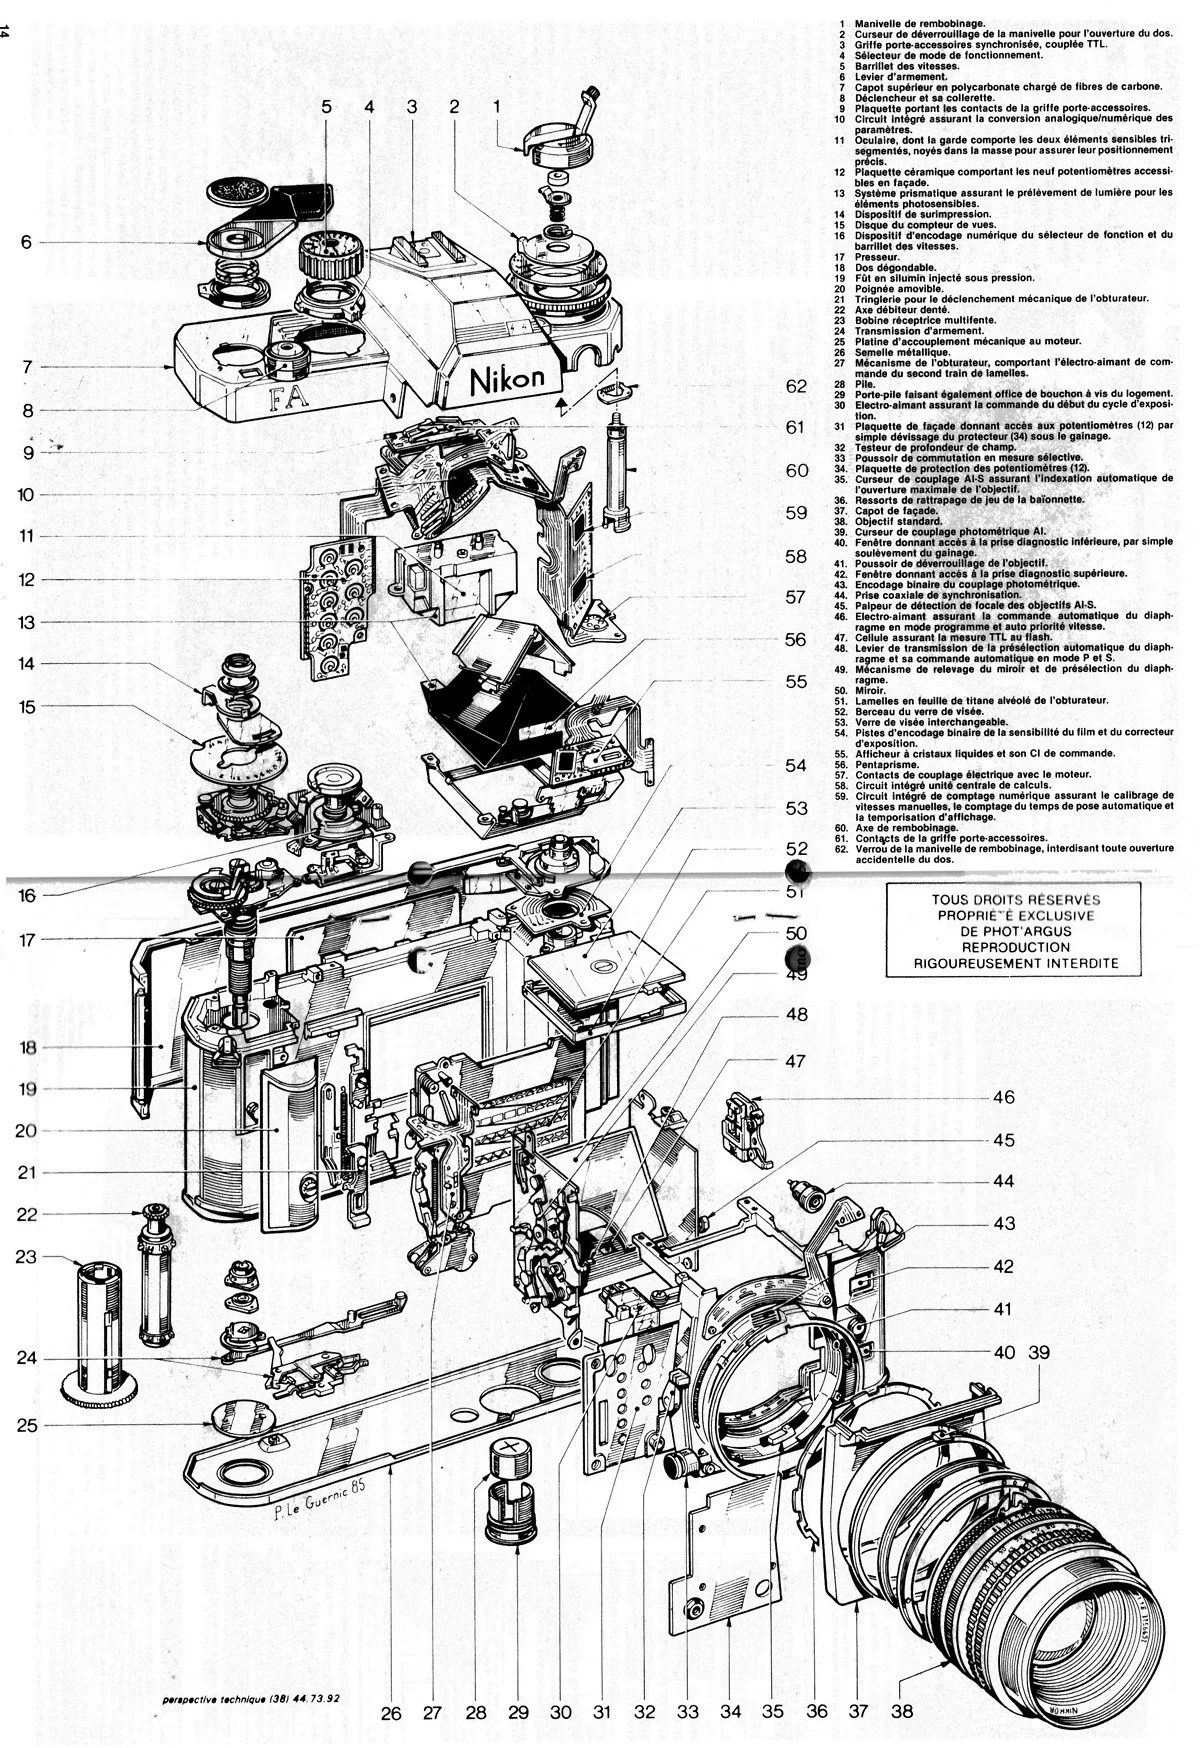 slr camera diagram 1996 toyota corolla alternator wiring these schematics offer an exploded view of old nikon